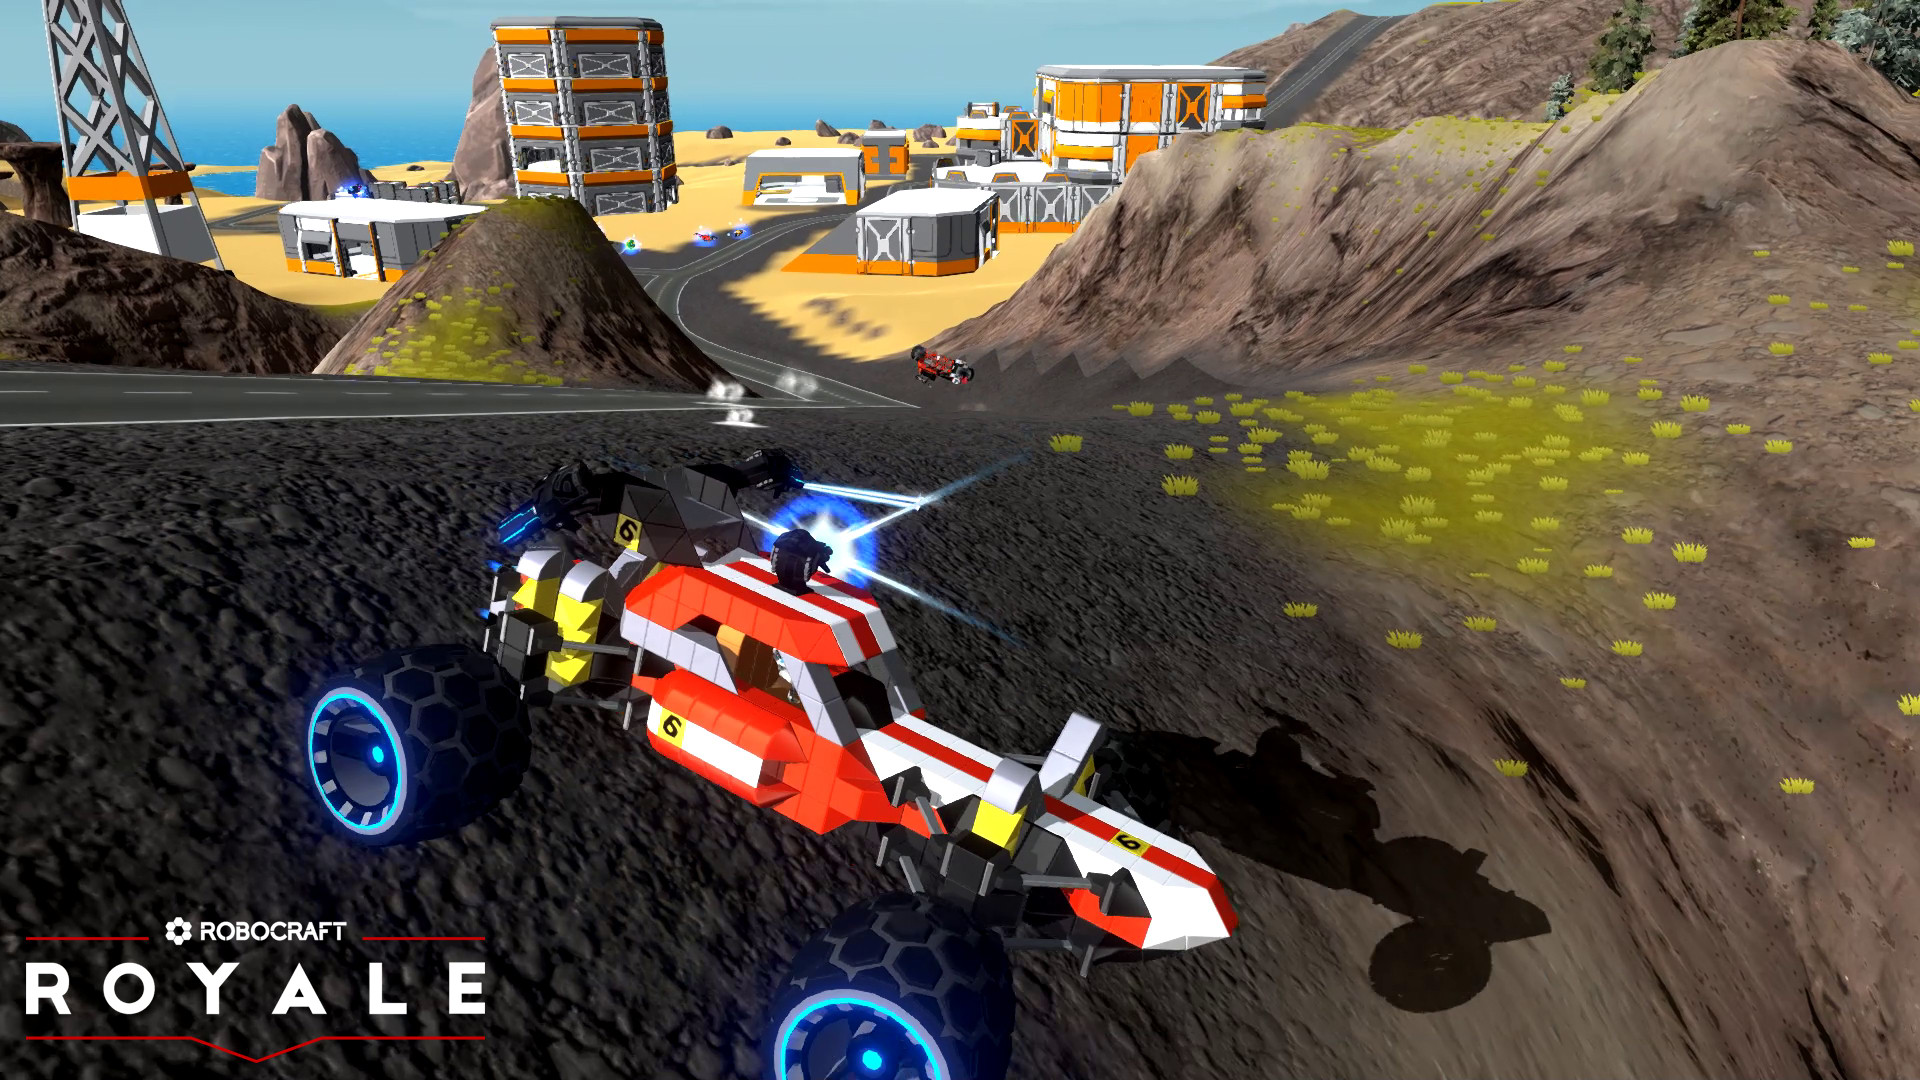 Robocraft Royale - Steam Early Access Trailer | pressakey.com